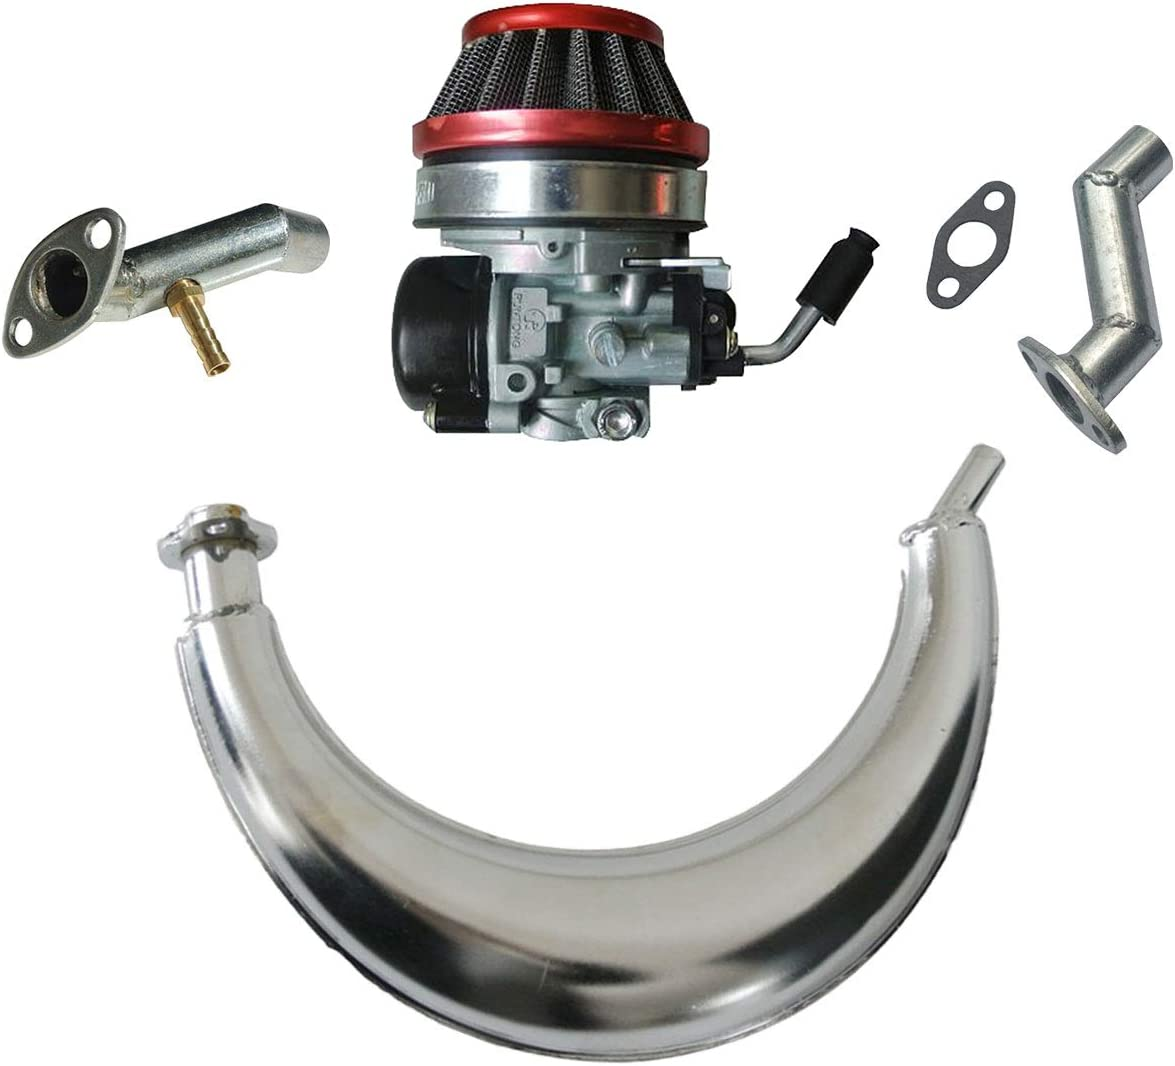 HGC Red Air Filter & Muffler Exhaust Pipe & Carburetor & Intake Manifold & Carburetor Intake Manifold Fits 49cc 66cc 80cc 2 Stroke Engine Motorized Bicycle Bike